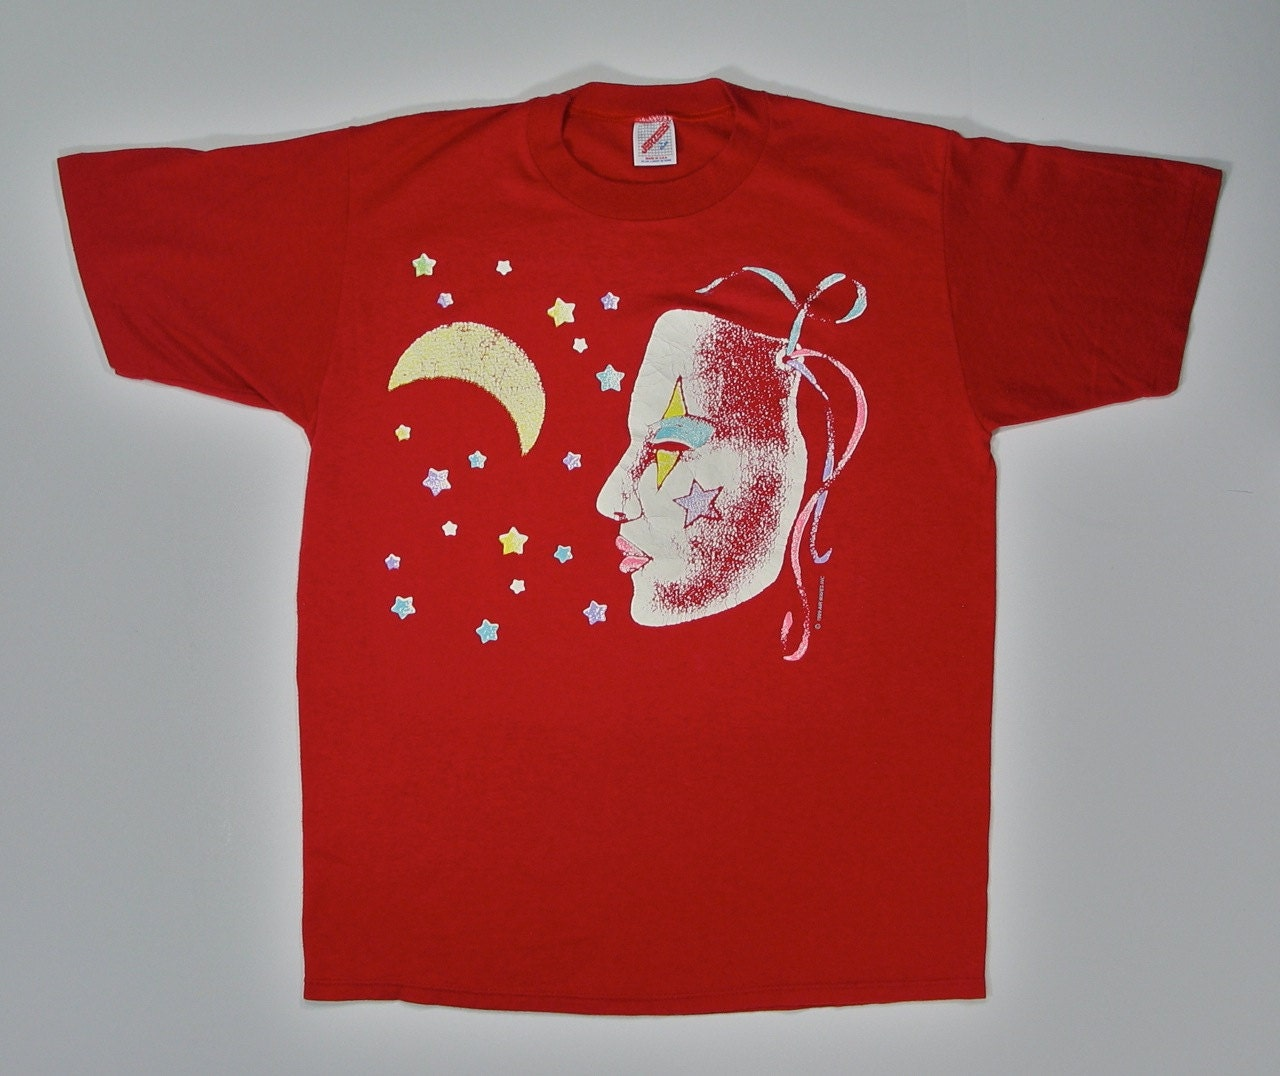 80s mask t shirt puff paint red tee harlequin moon stars m for Puffy paint shirt designs